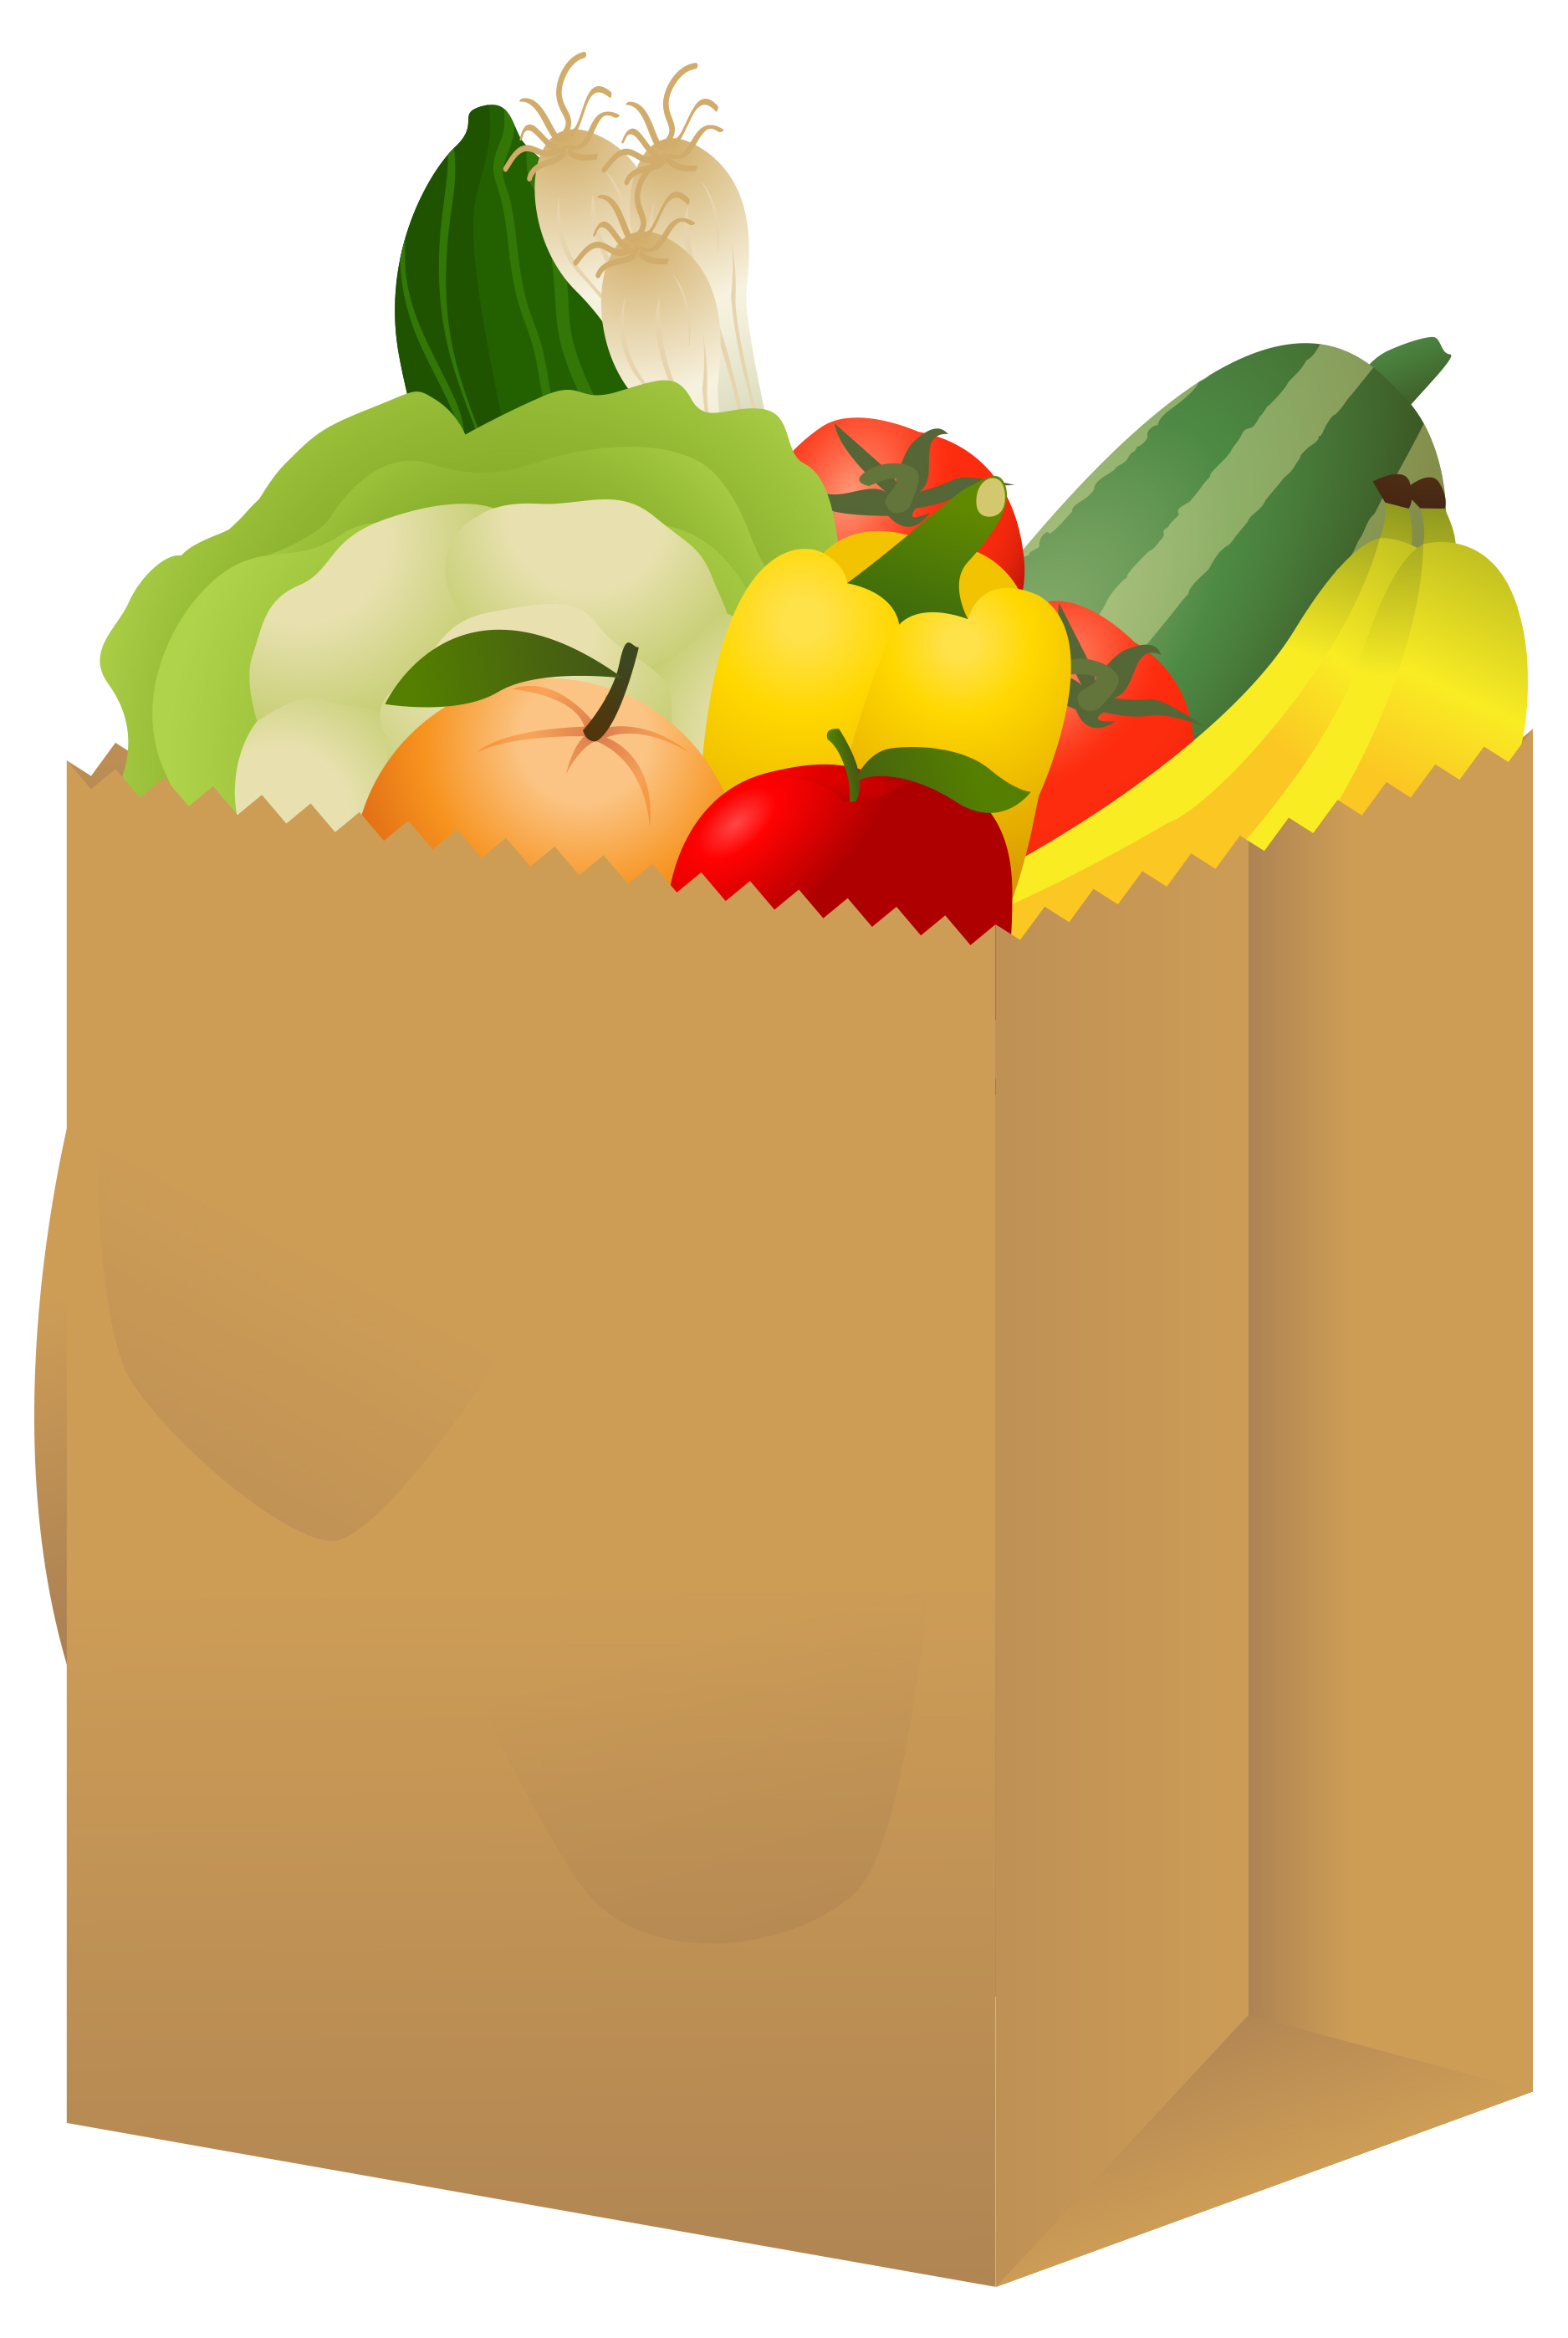 Clip Art Grocery Bag Clipart grocery bag clipart kid view jpg free nutrition and healthy food clipart